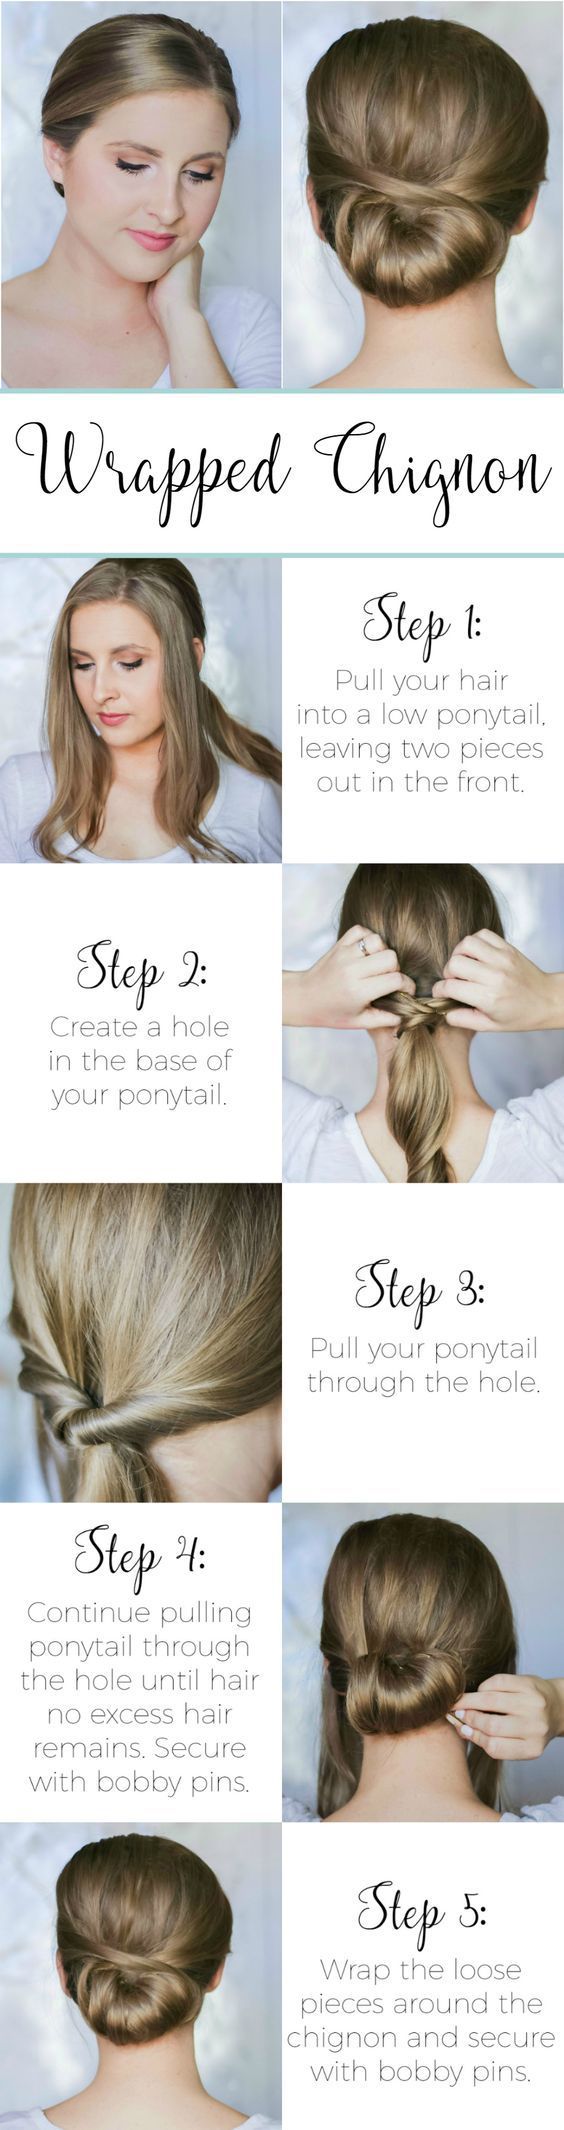 best hair and makeup images on pinterest cute hairstyles